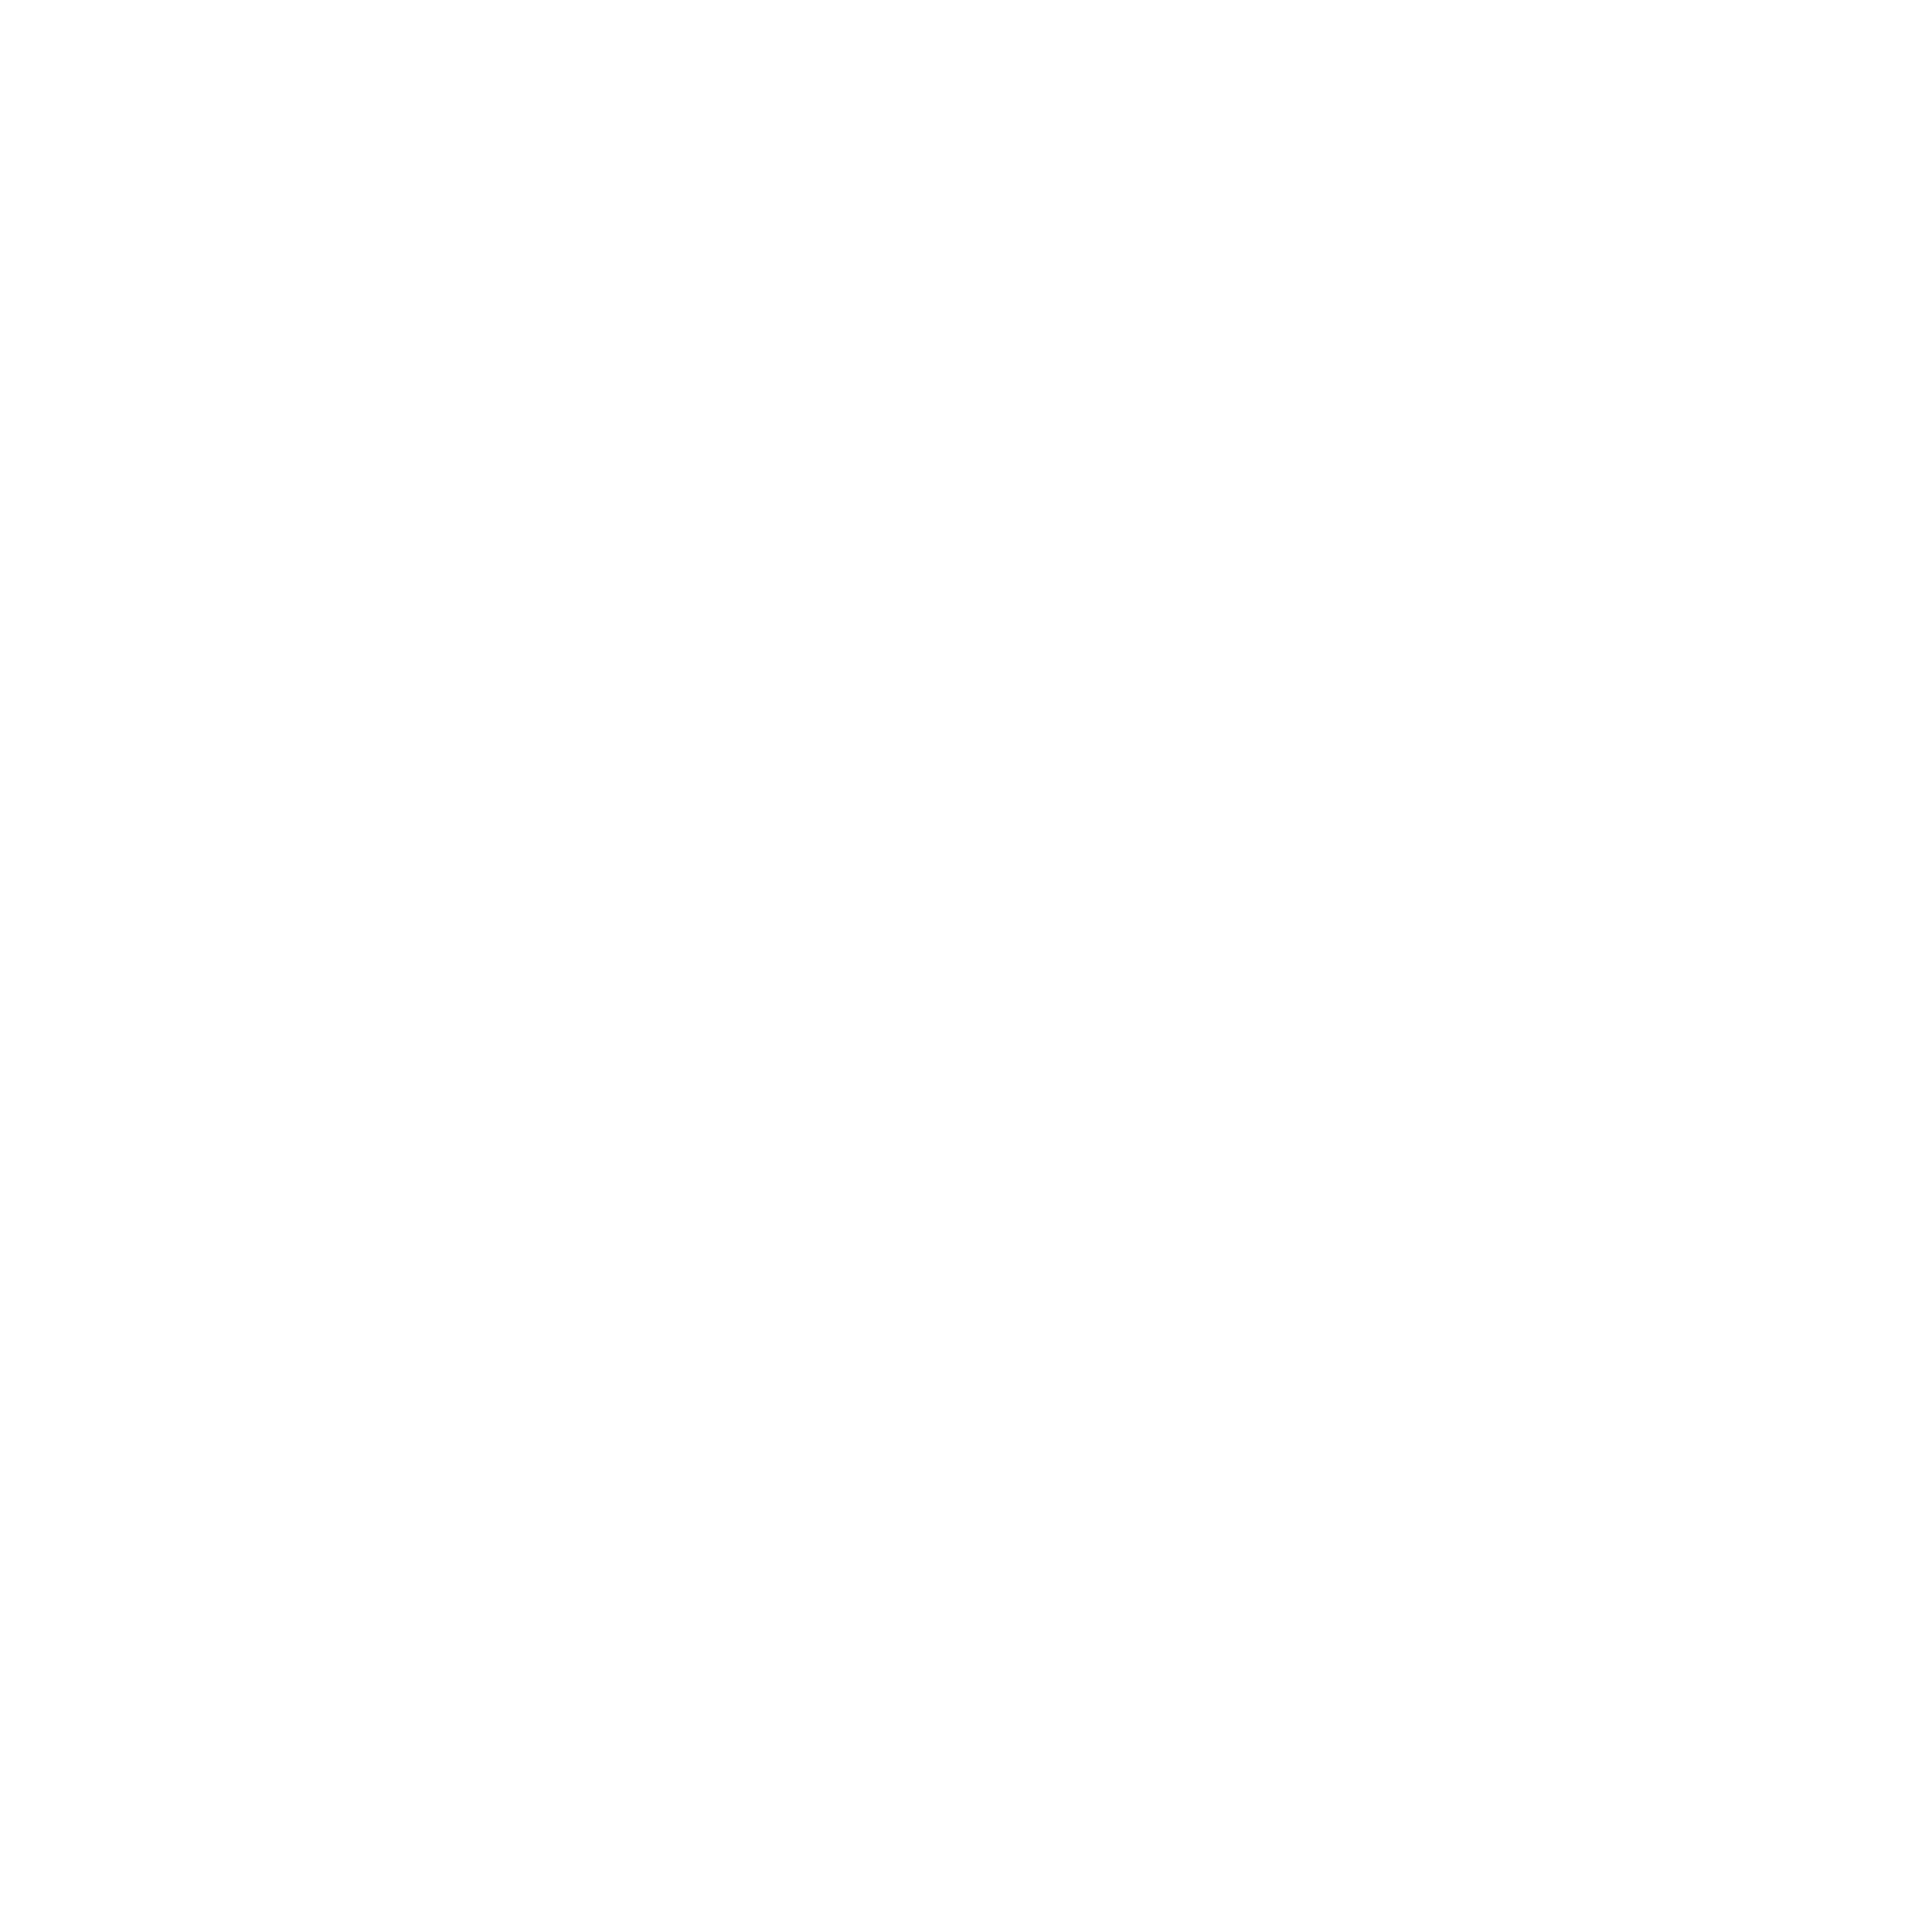 White check mark png. File svg wikimedia commons